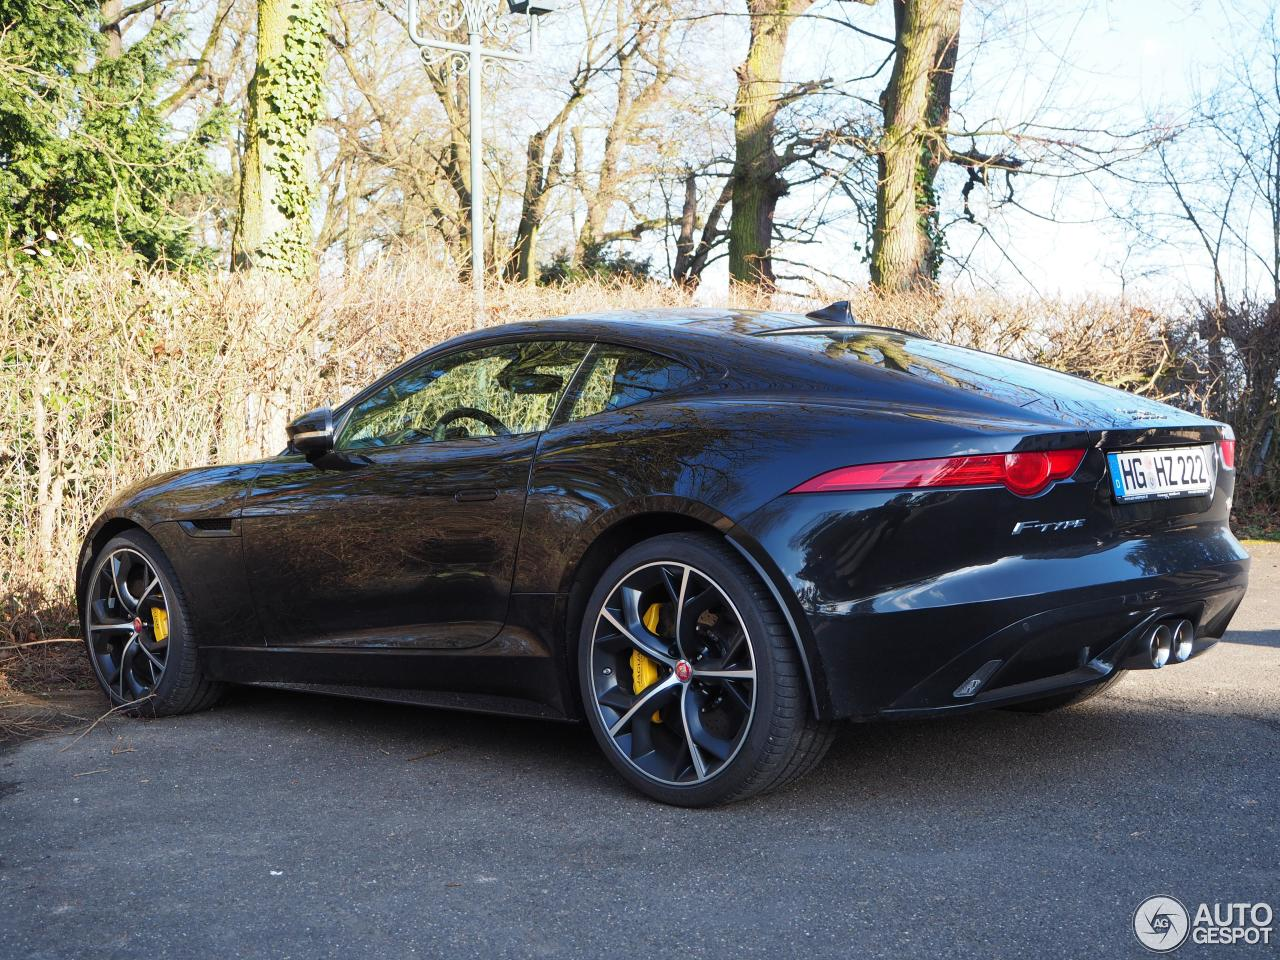 jaguar f type s coup 29 mars 2015 autogespot. Black Bedroom Furniture Sets. Home Design Ideas